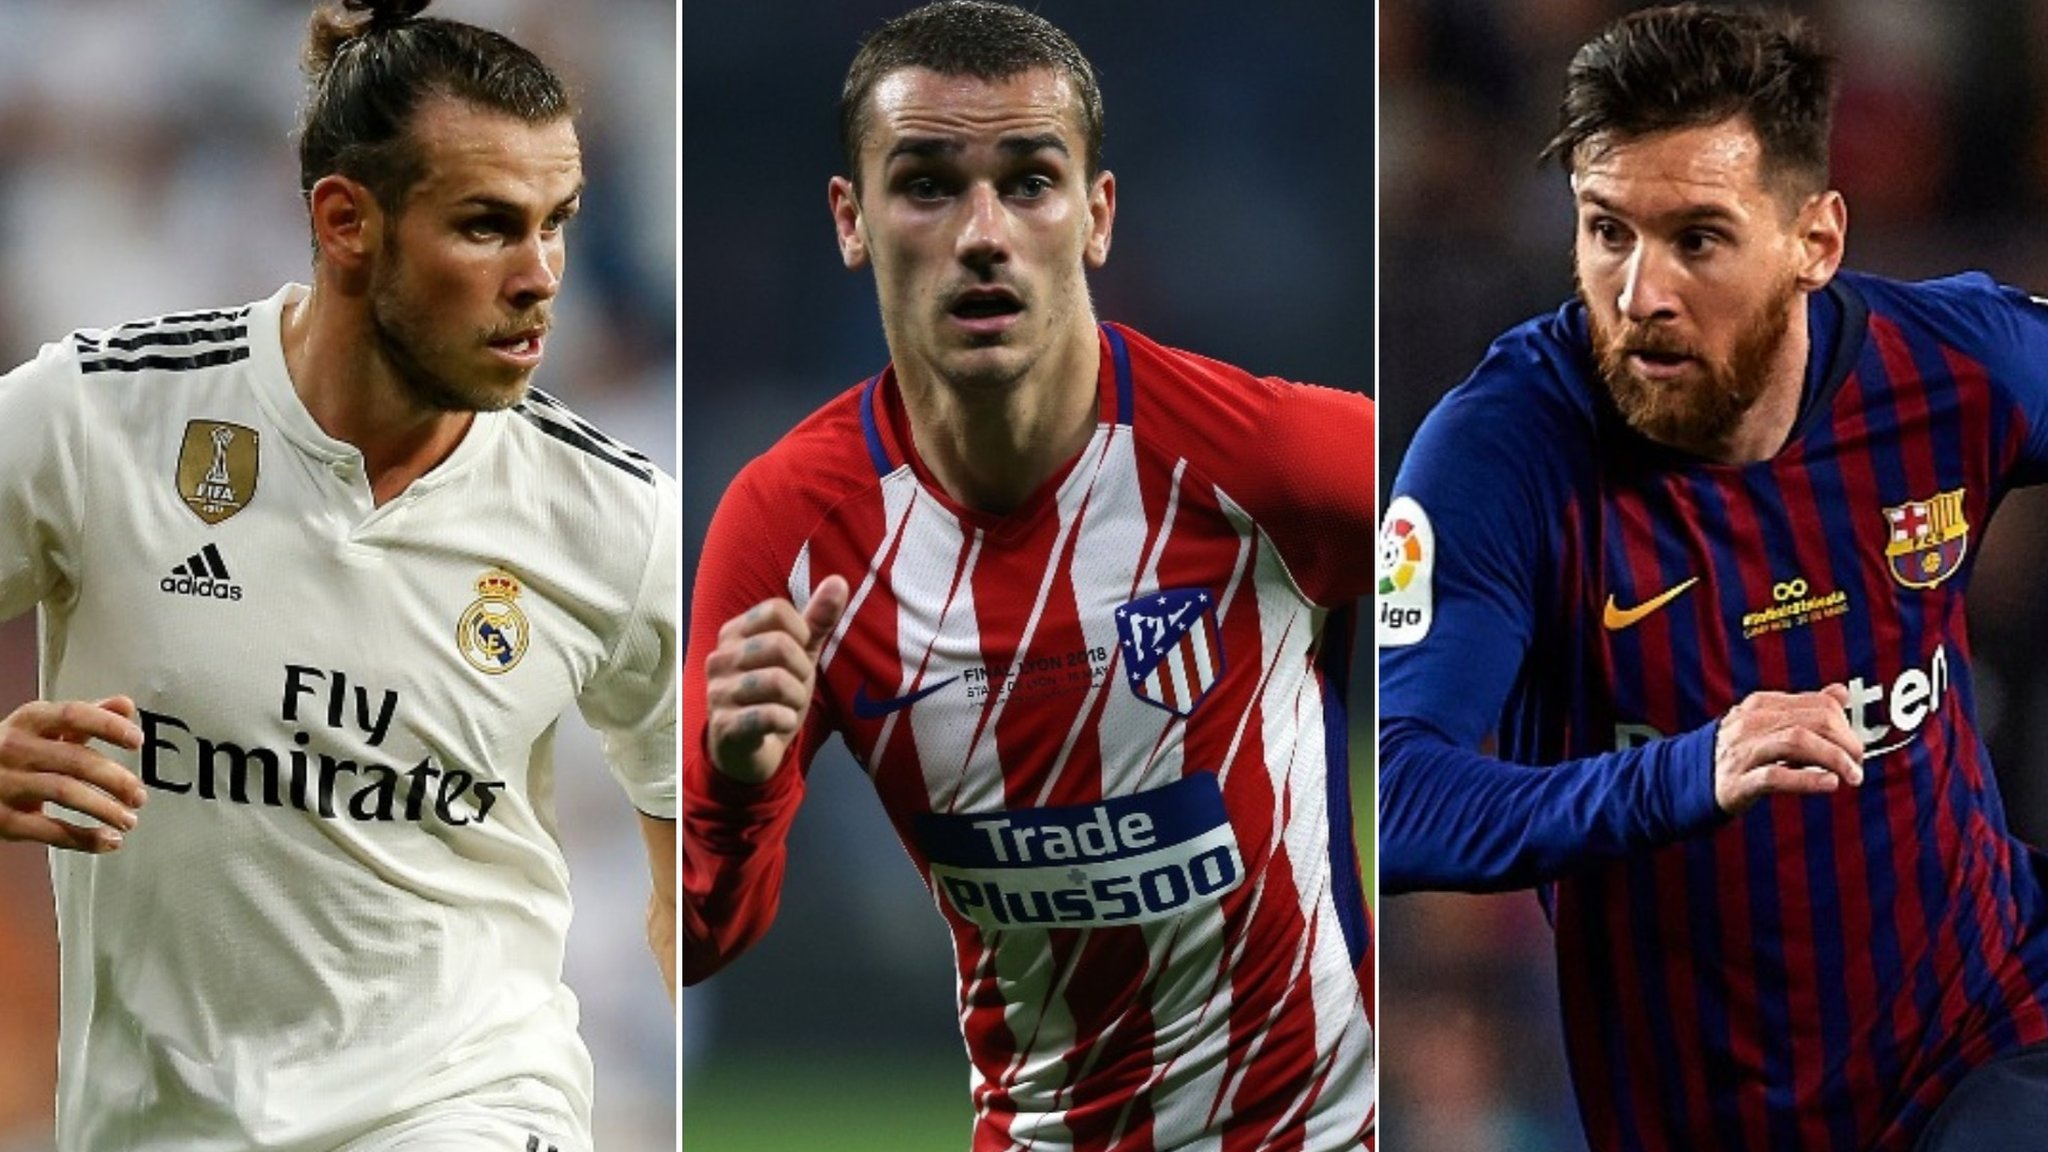 Could Atletico beat Real & Barca to La Liga title?